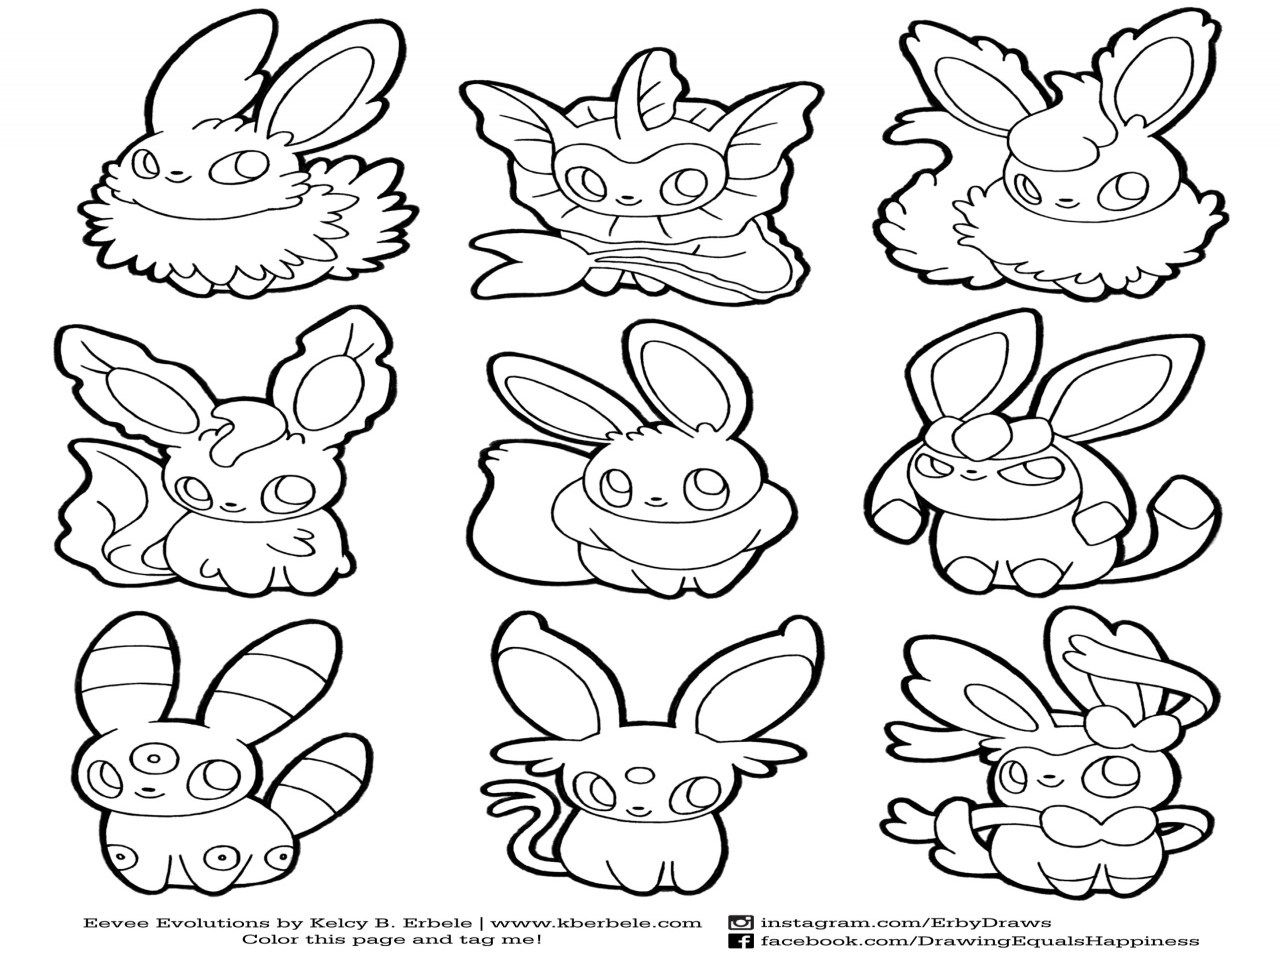 Elegant Image Of Eevee Evolutions Coloring Pages Davemelillo Com Pokemon Coloring Pages Pokemon Coloring Sheets Pokemon Coloring